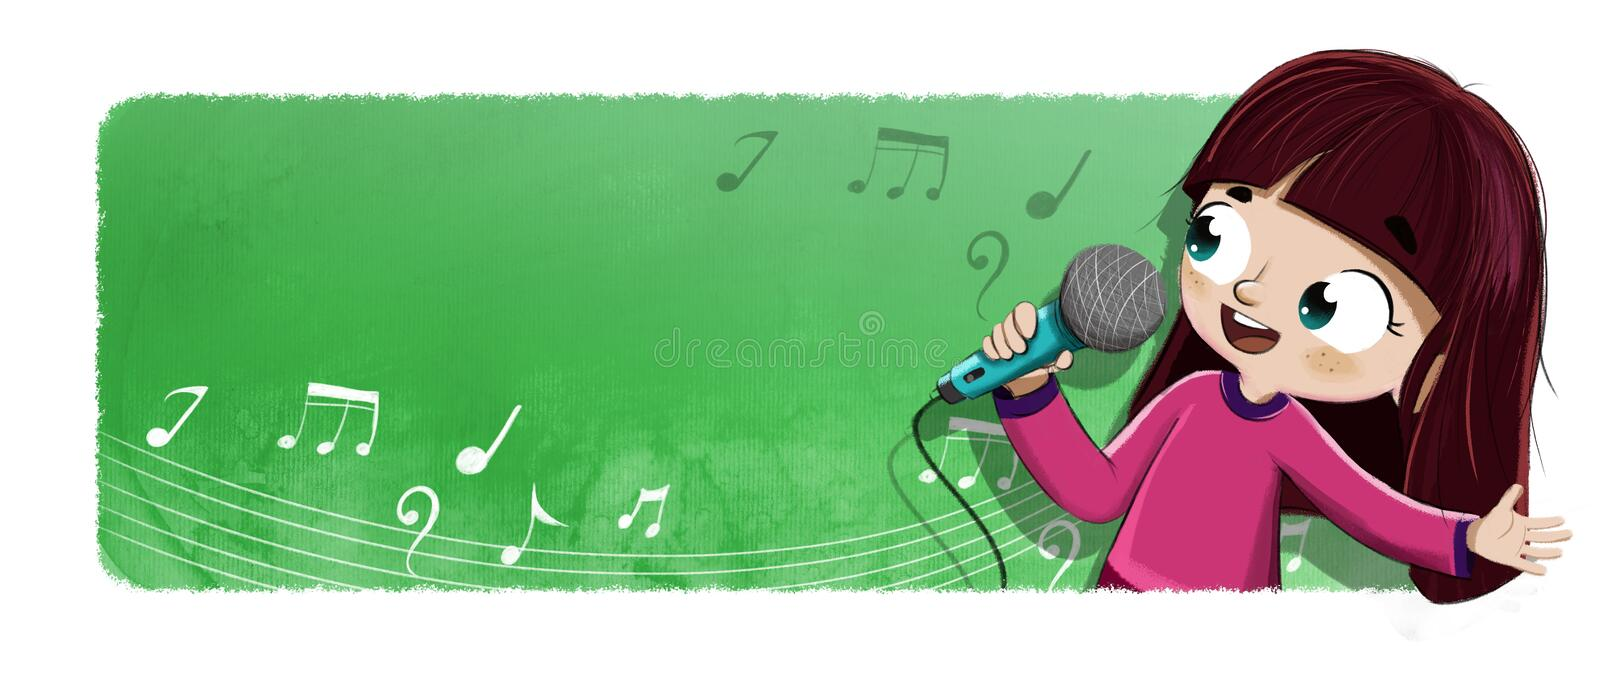 Girl singing with microphone illustration vector illustration